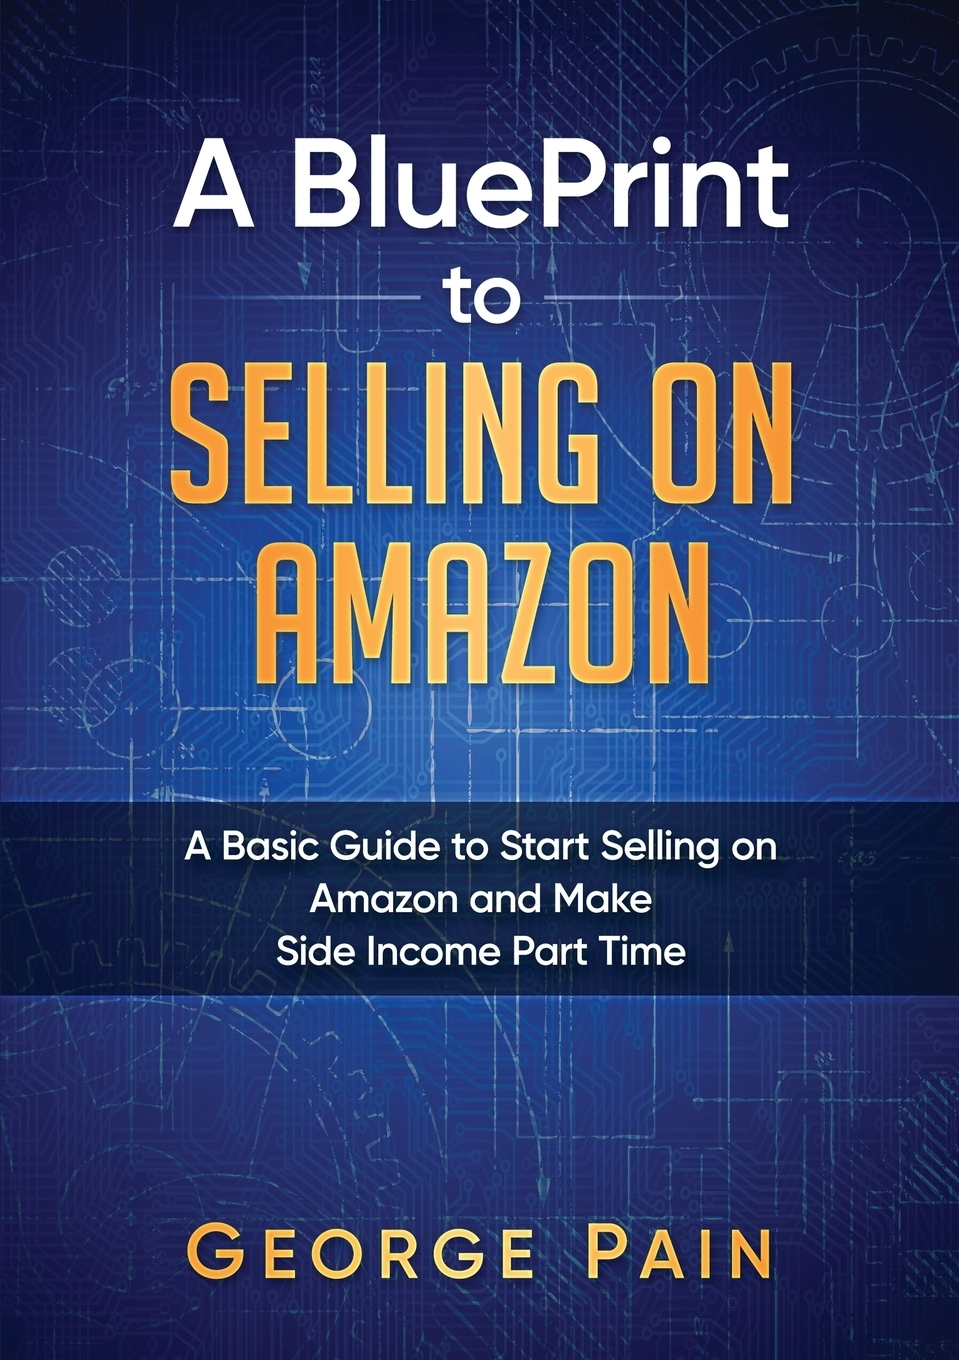 George Pain A BluePrint to Selling on Amazon. A Basic Guide to Start Selling on Amazon and Make Side Income Part Time the complete idiot s guide to selling your crafts on etsy